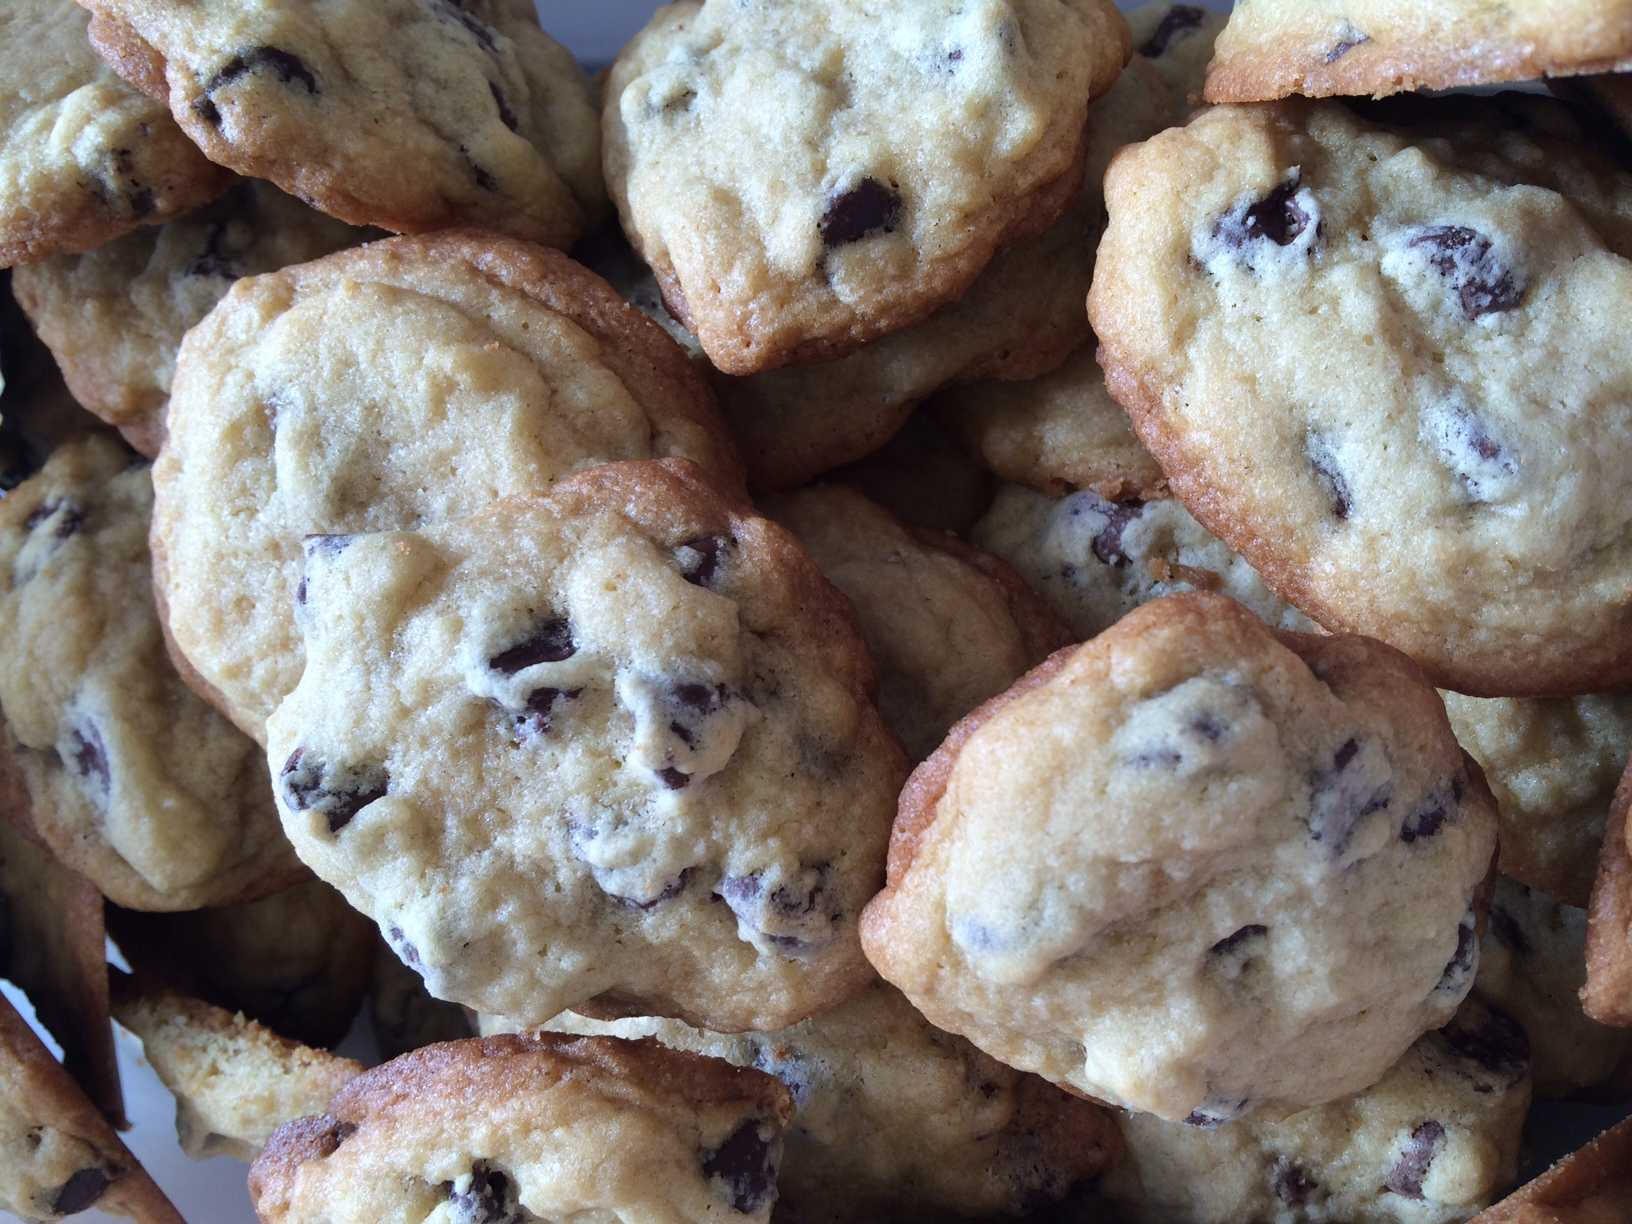 Tracy Anderson made a batch of her Grandma's famous Chocolate Chip Cookies for some melancholy juniors taking the MME.